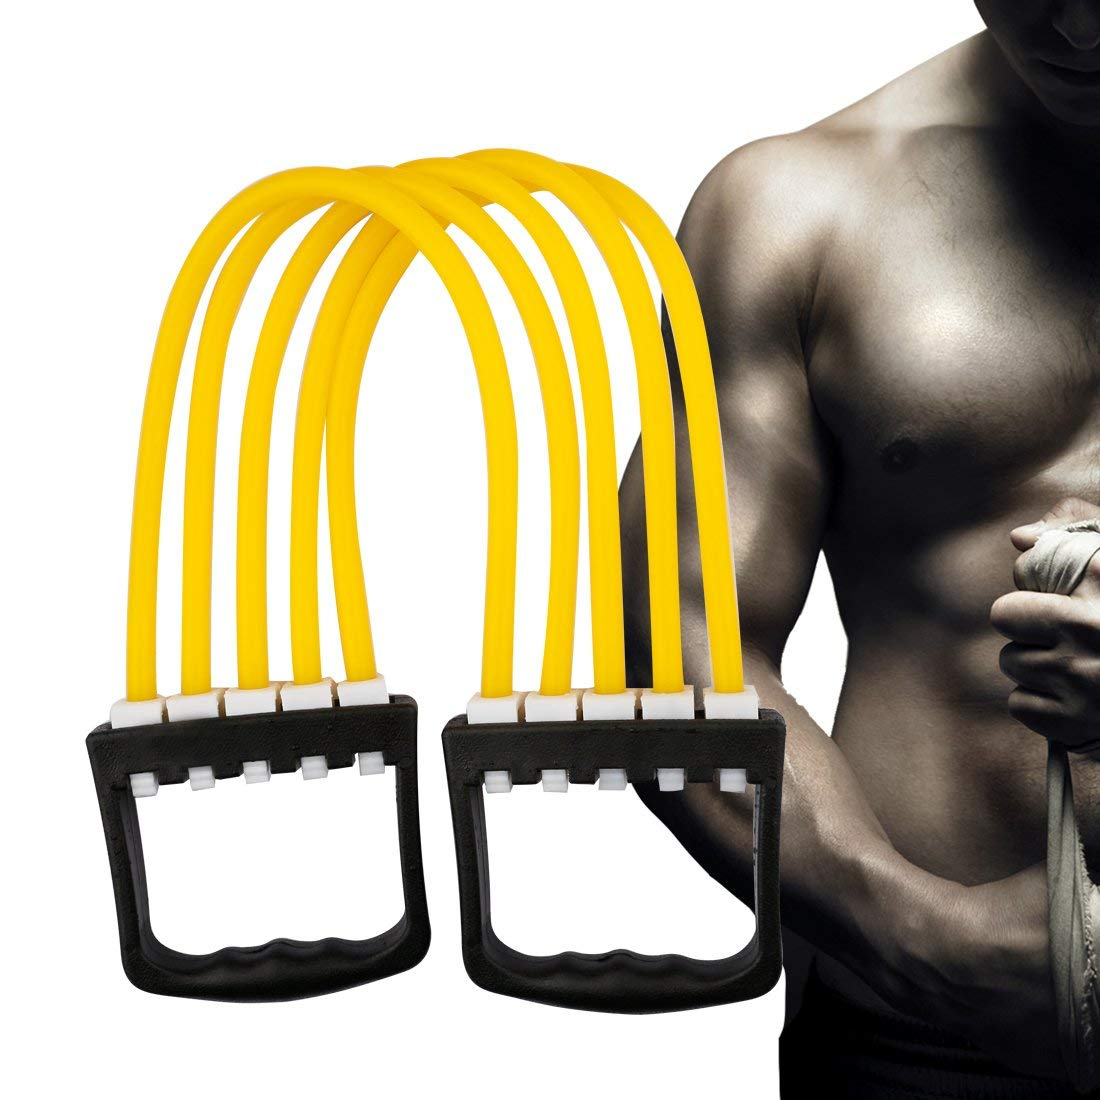 5 Spring Chest Arm Tubing Expander Exercise Fitness Strength Muscle Stretching